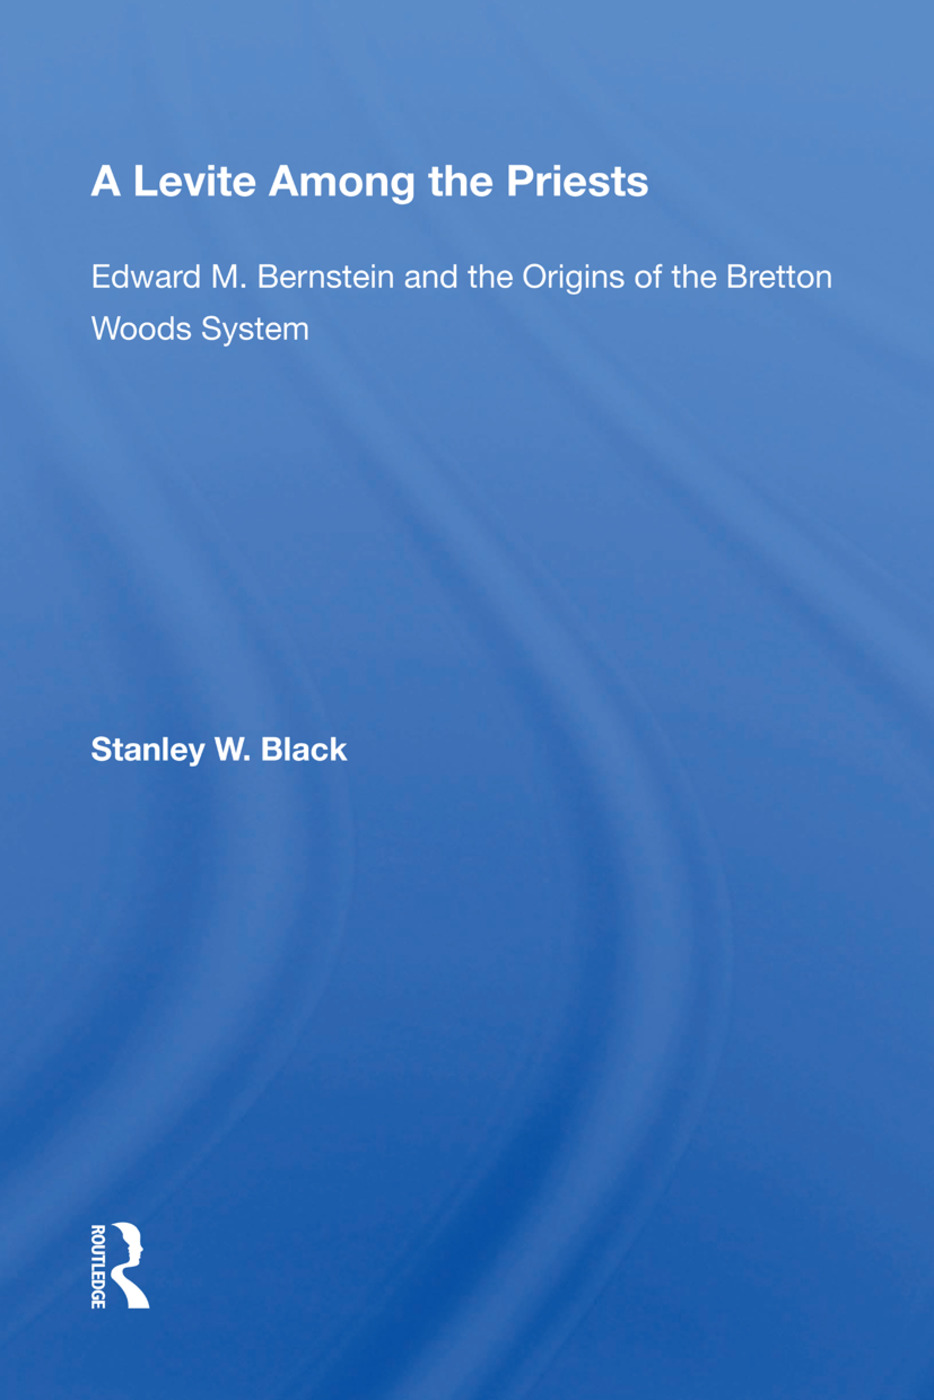 A Levite Among The Priests: Edward M. Bernstein And The Origins Of The Bretton Woods System, 1st Edition (Paperback) book cover